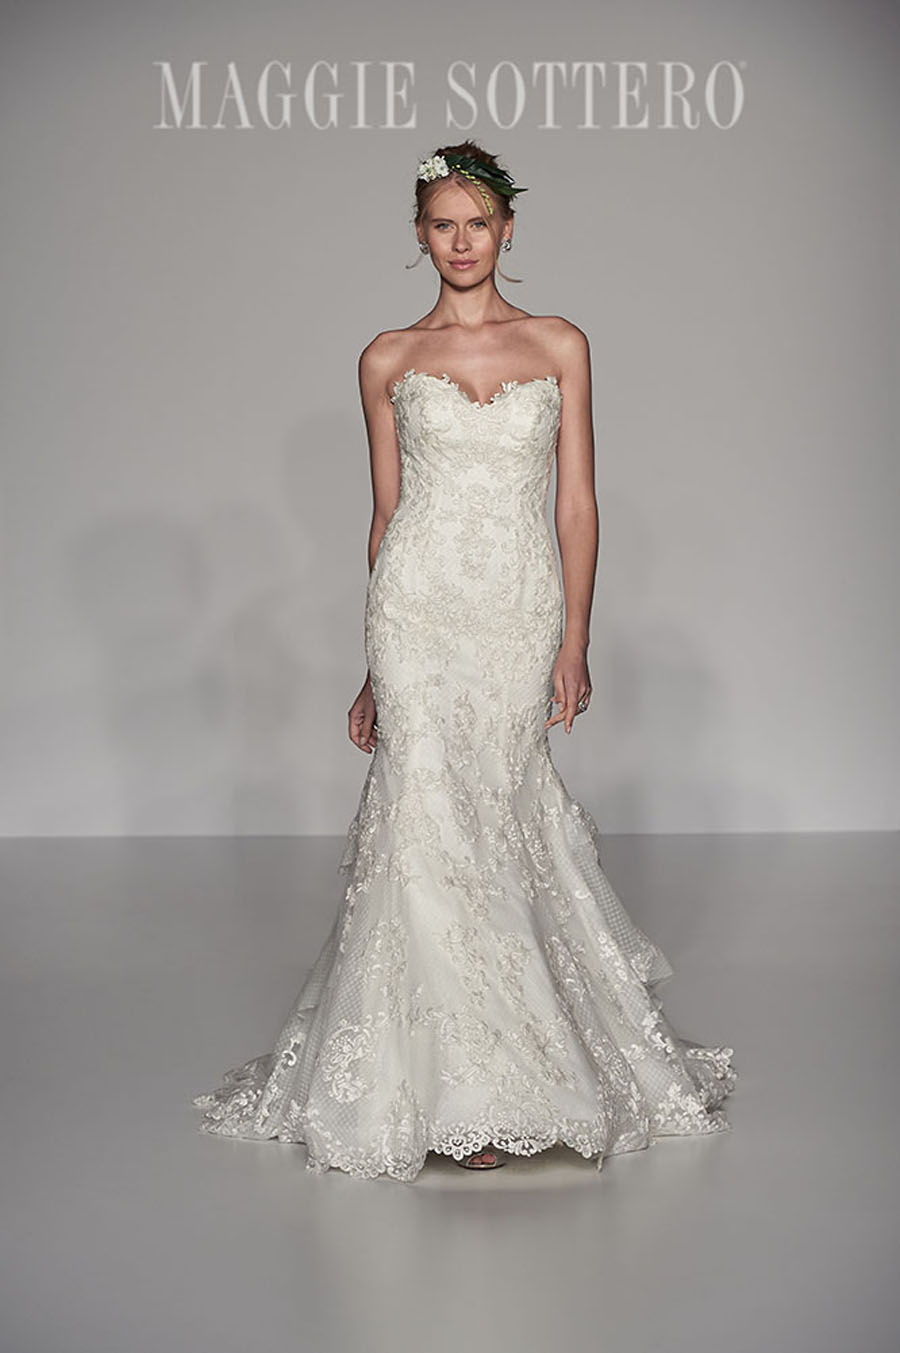 Maggie Sottero Spring 2017 Collection - goldie front